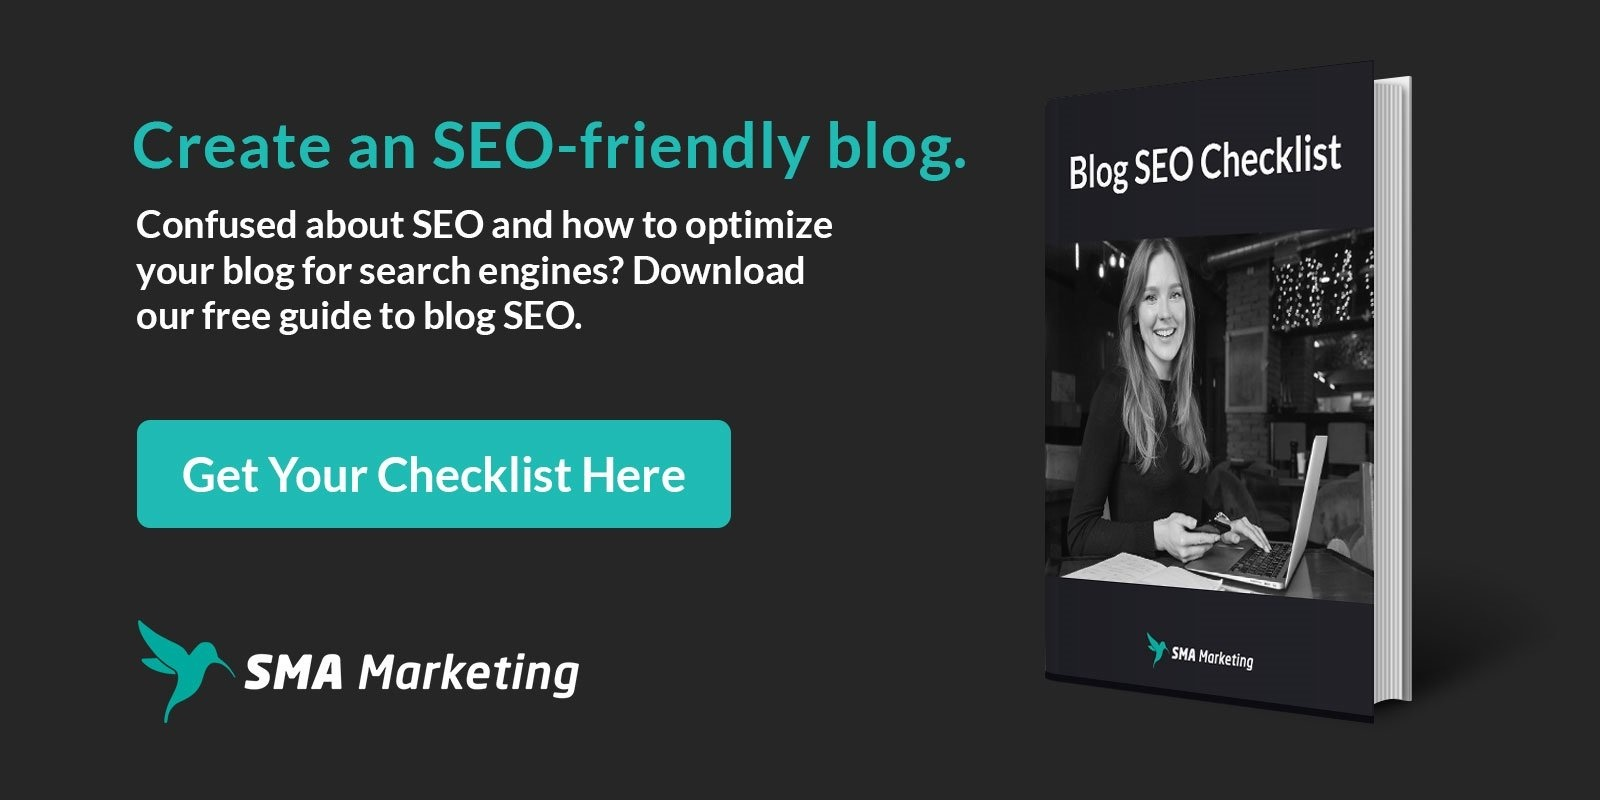 Get Your Free Blog SEO Checklist Here